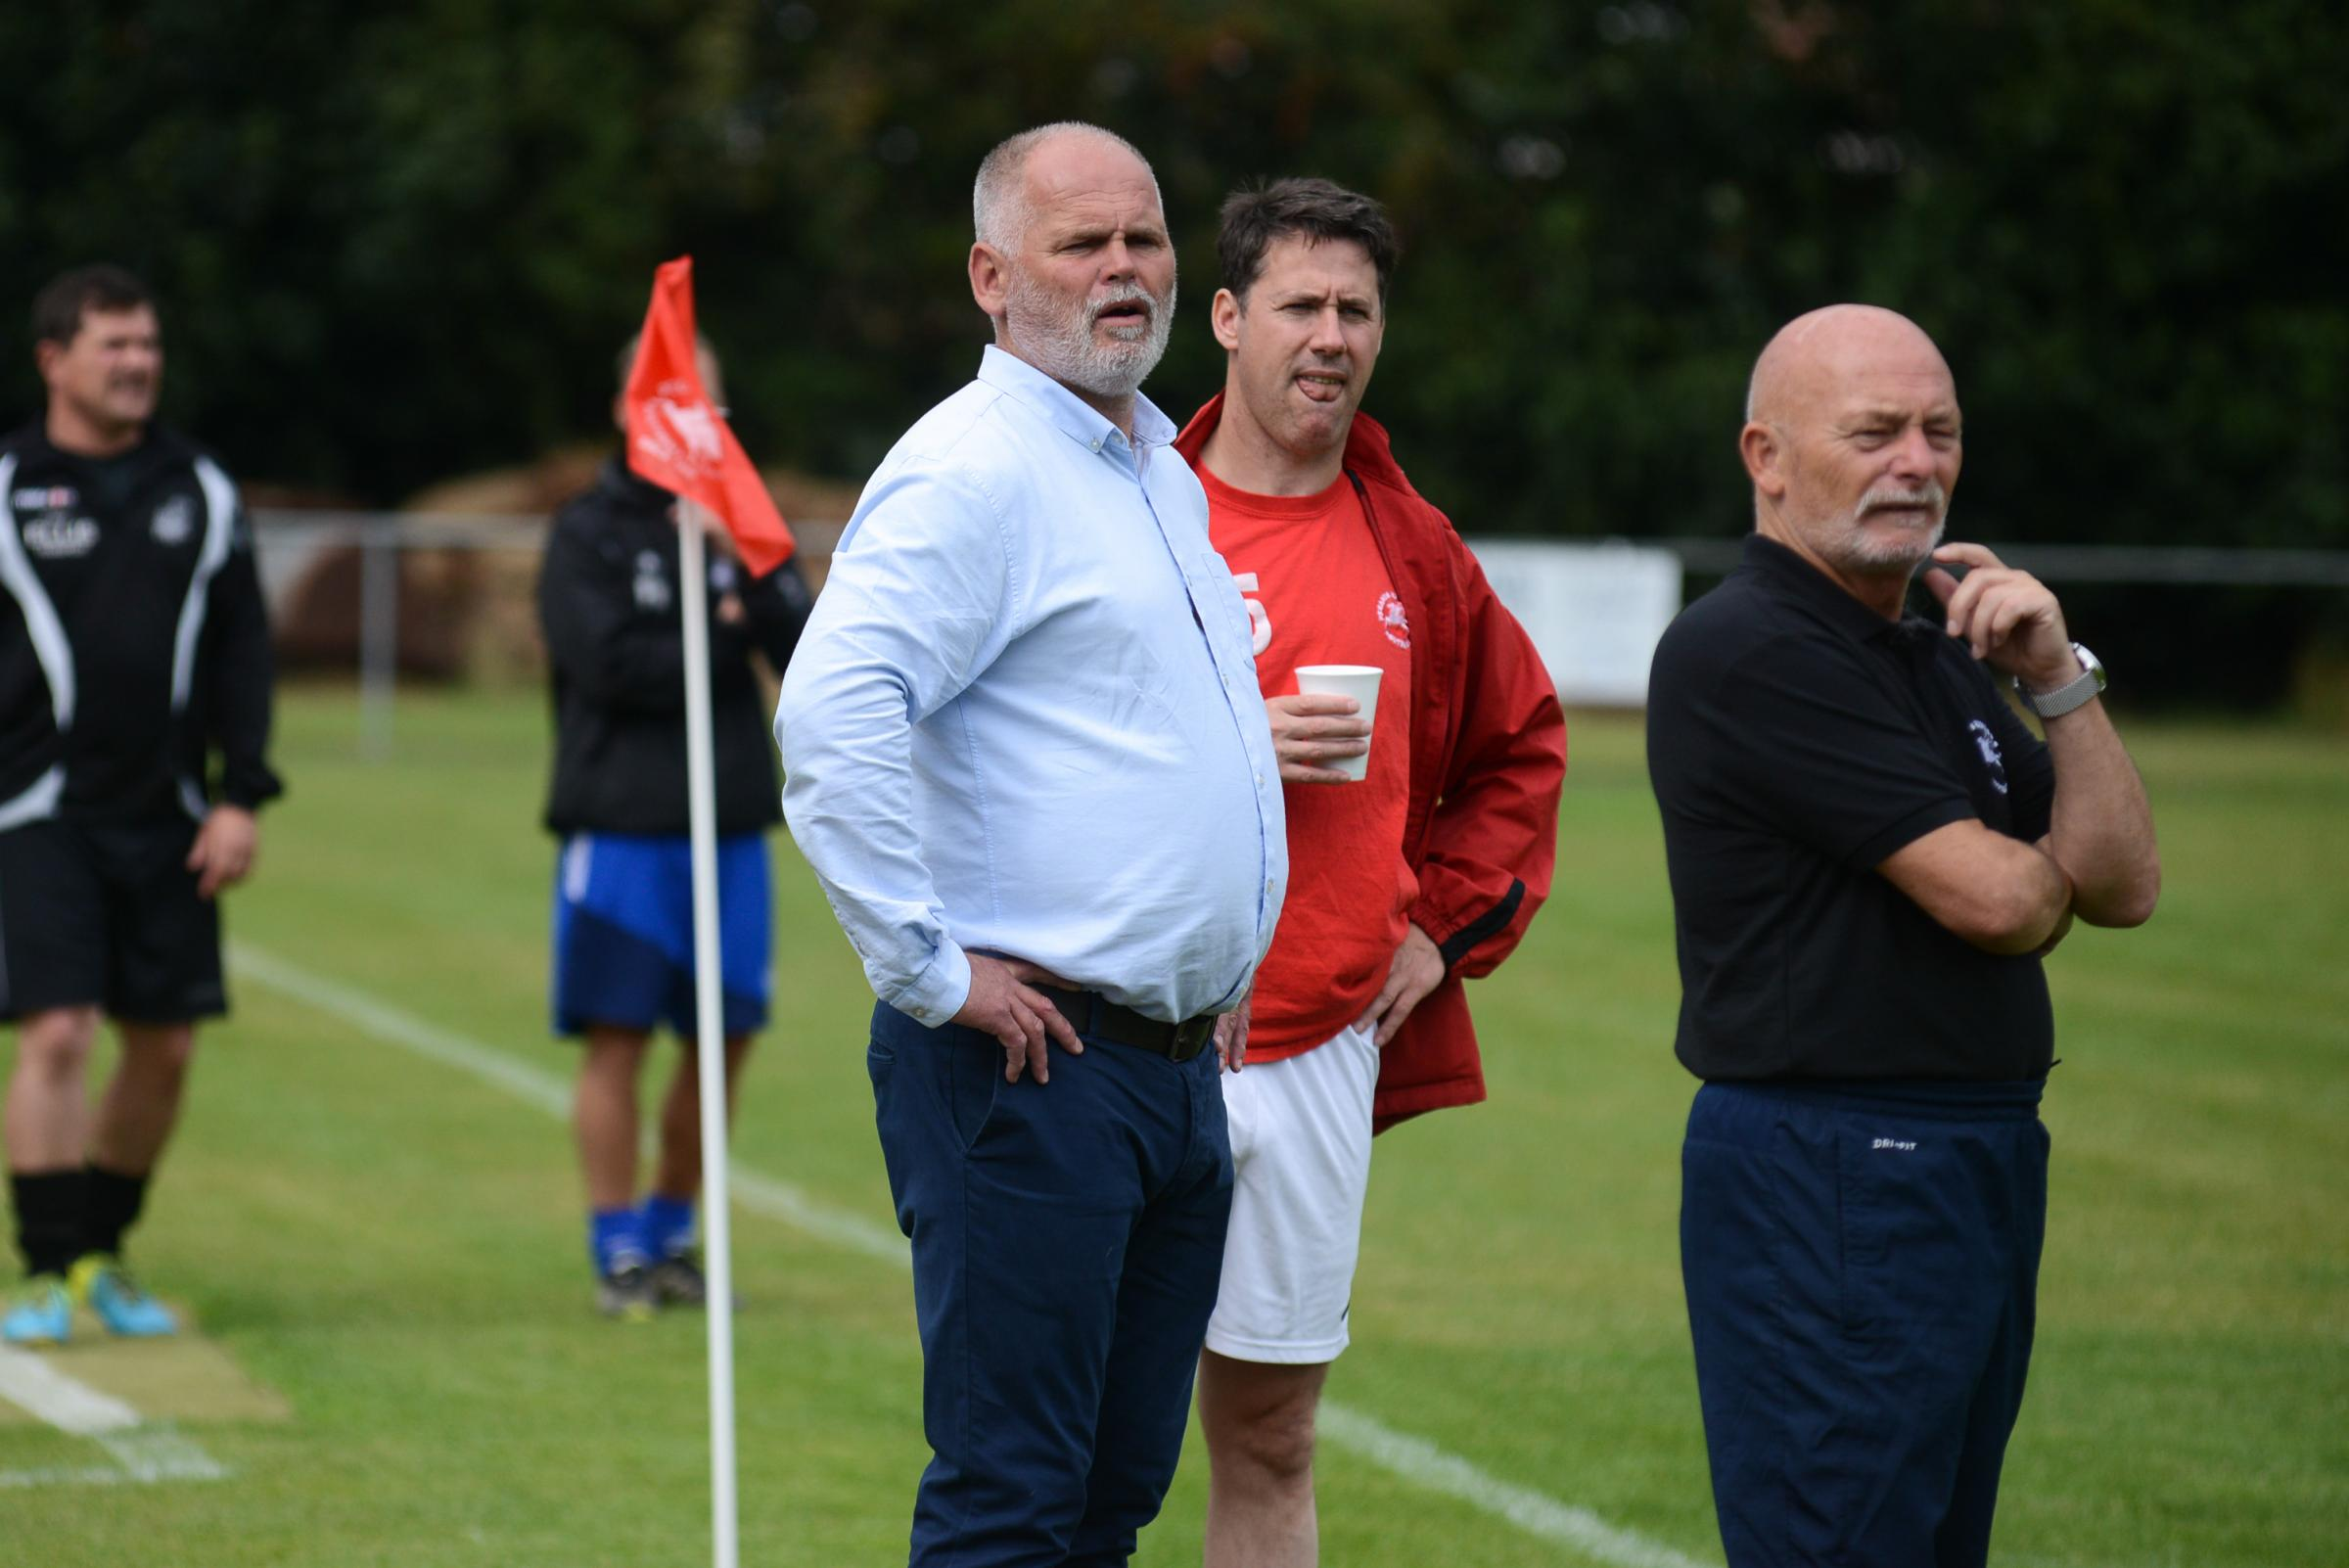 Pegasus Juniors manager Mick Panniers (left) says the club will make changes in the summer